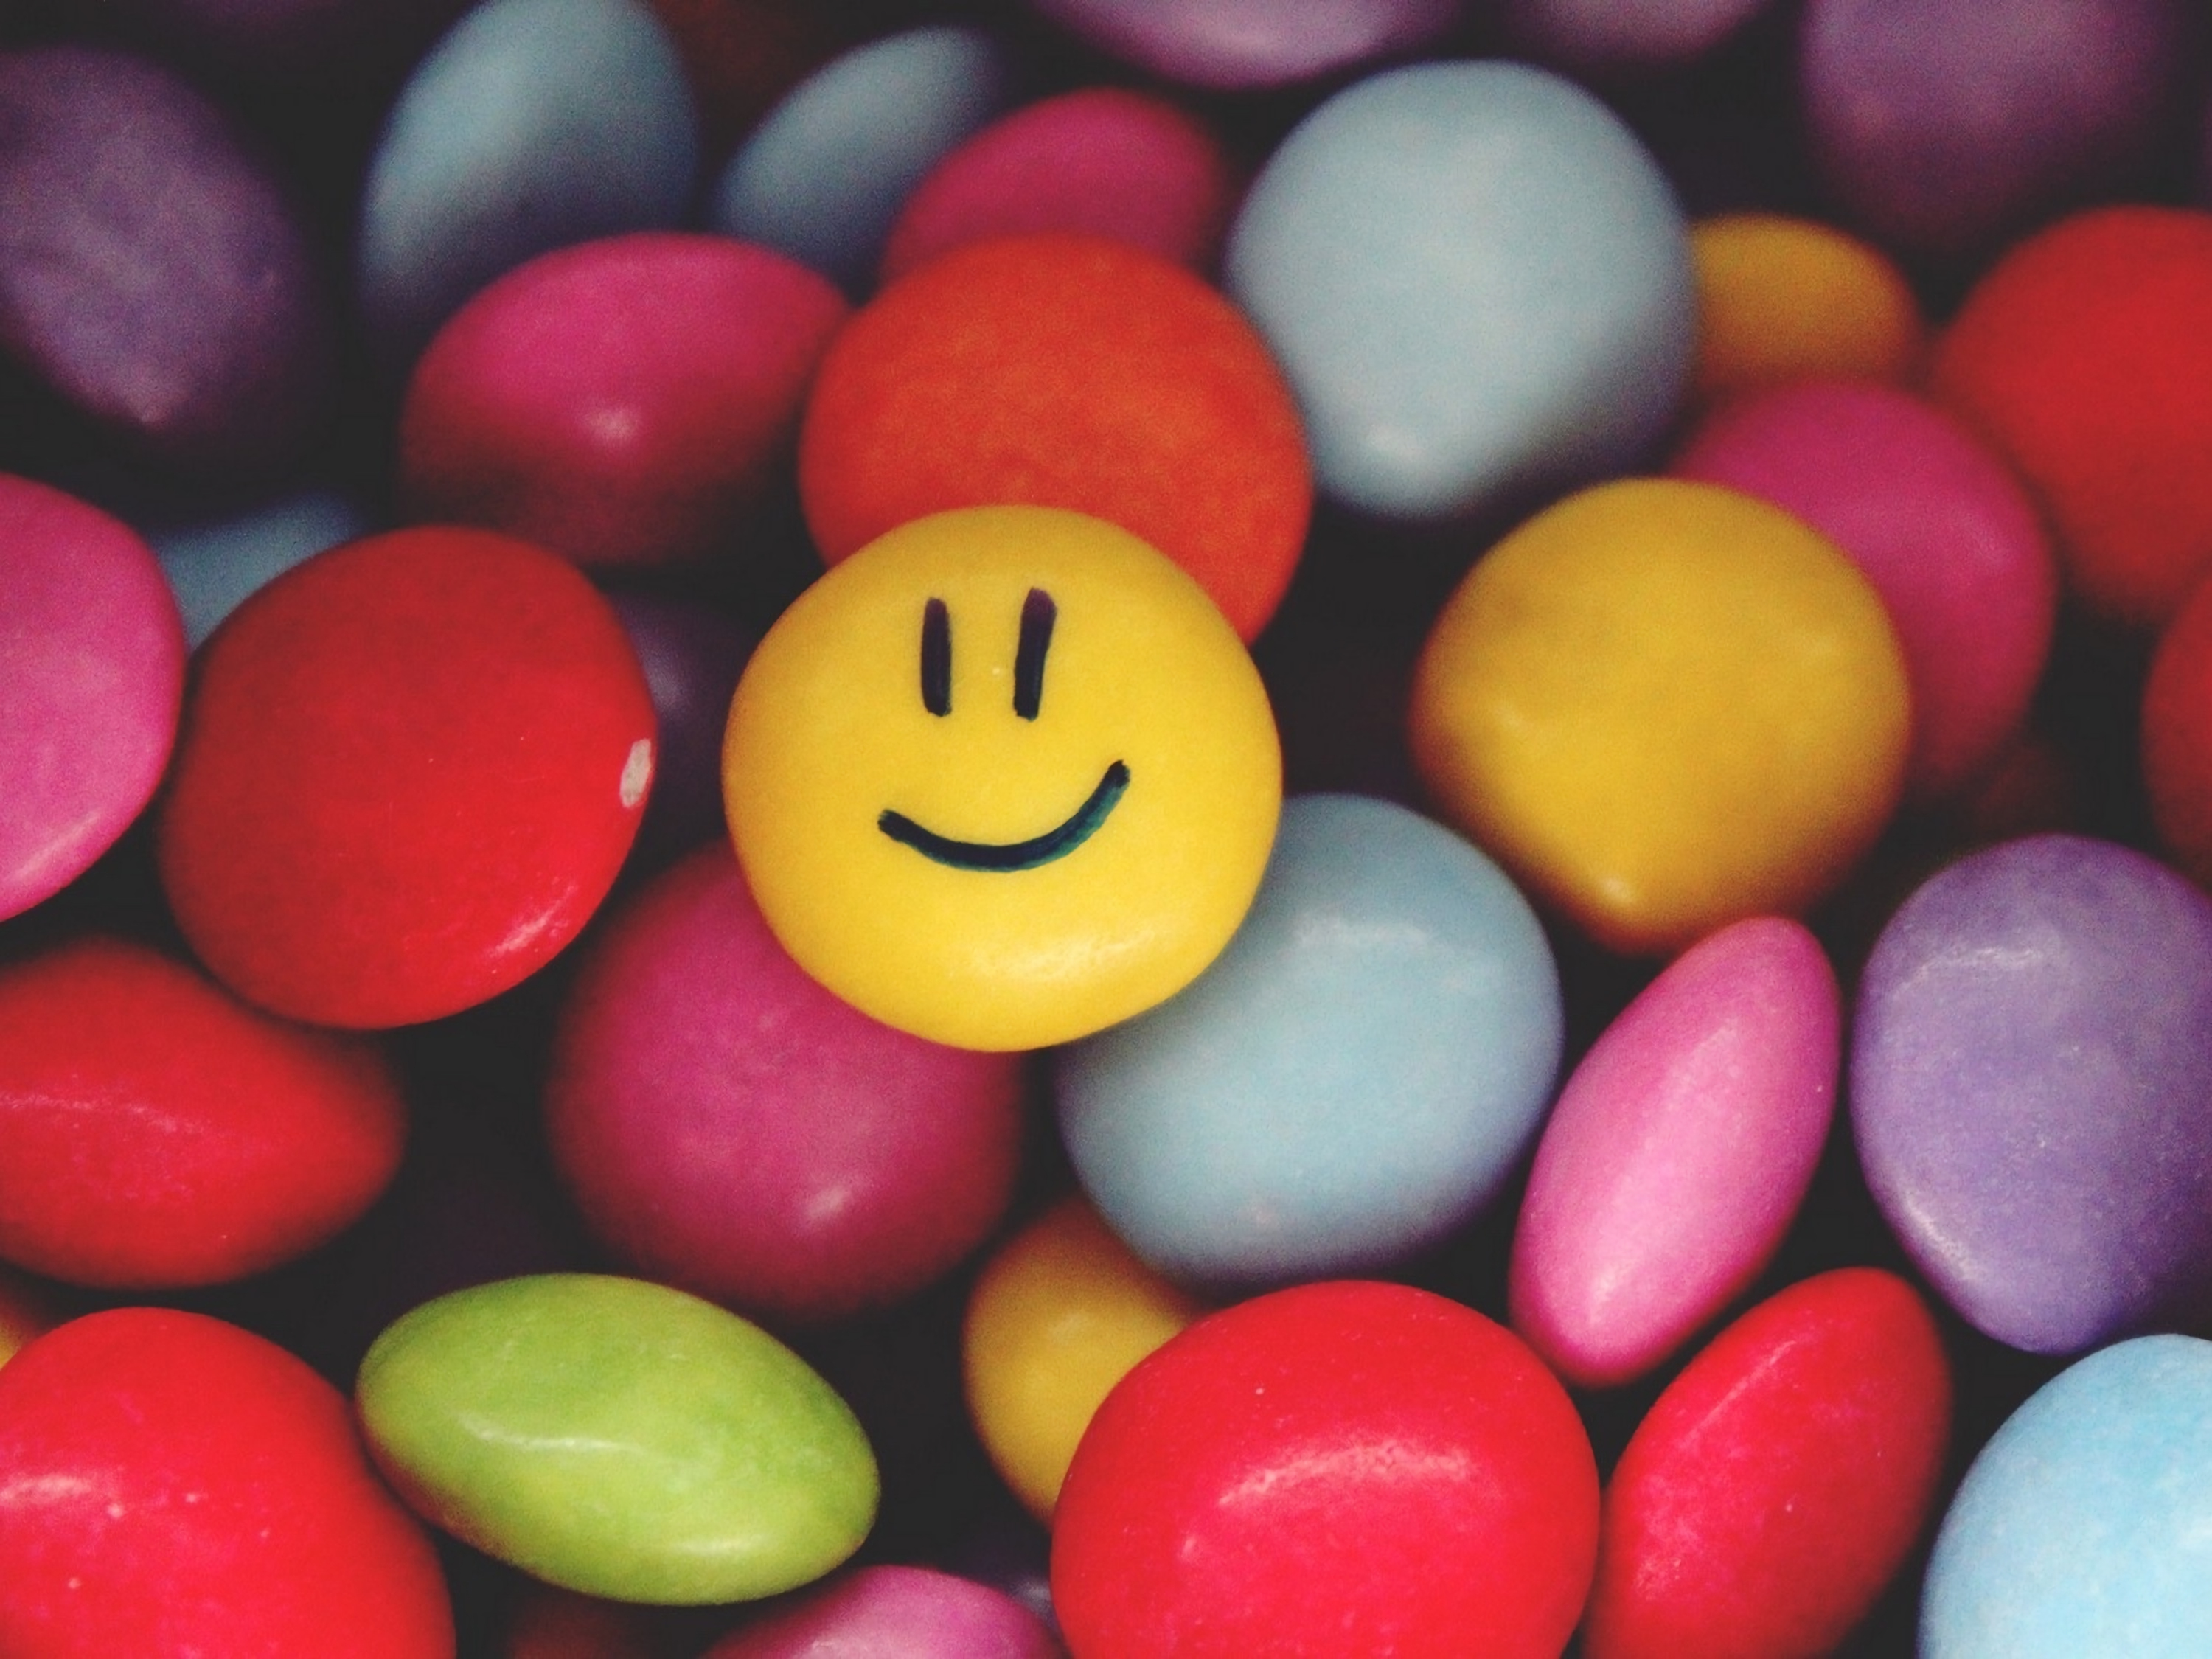 123936 Screensavers and Wallpapers Smile for phone. Download Candies, Miscellanea, Miscellaneous, Multicolored, Motley, Smile, Emoticon, Smiley pictures for free